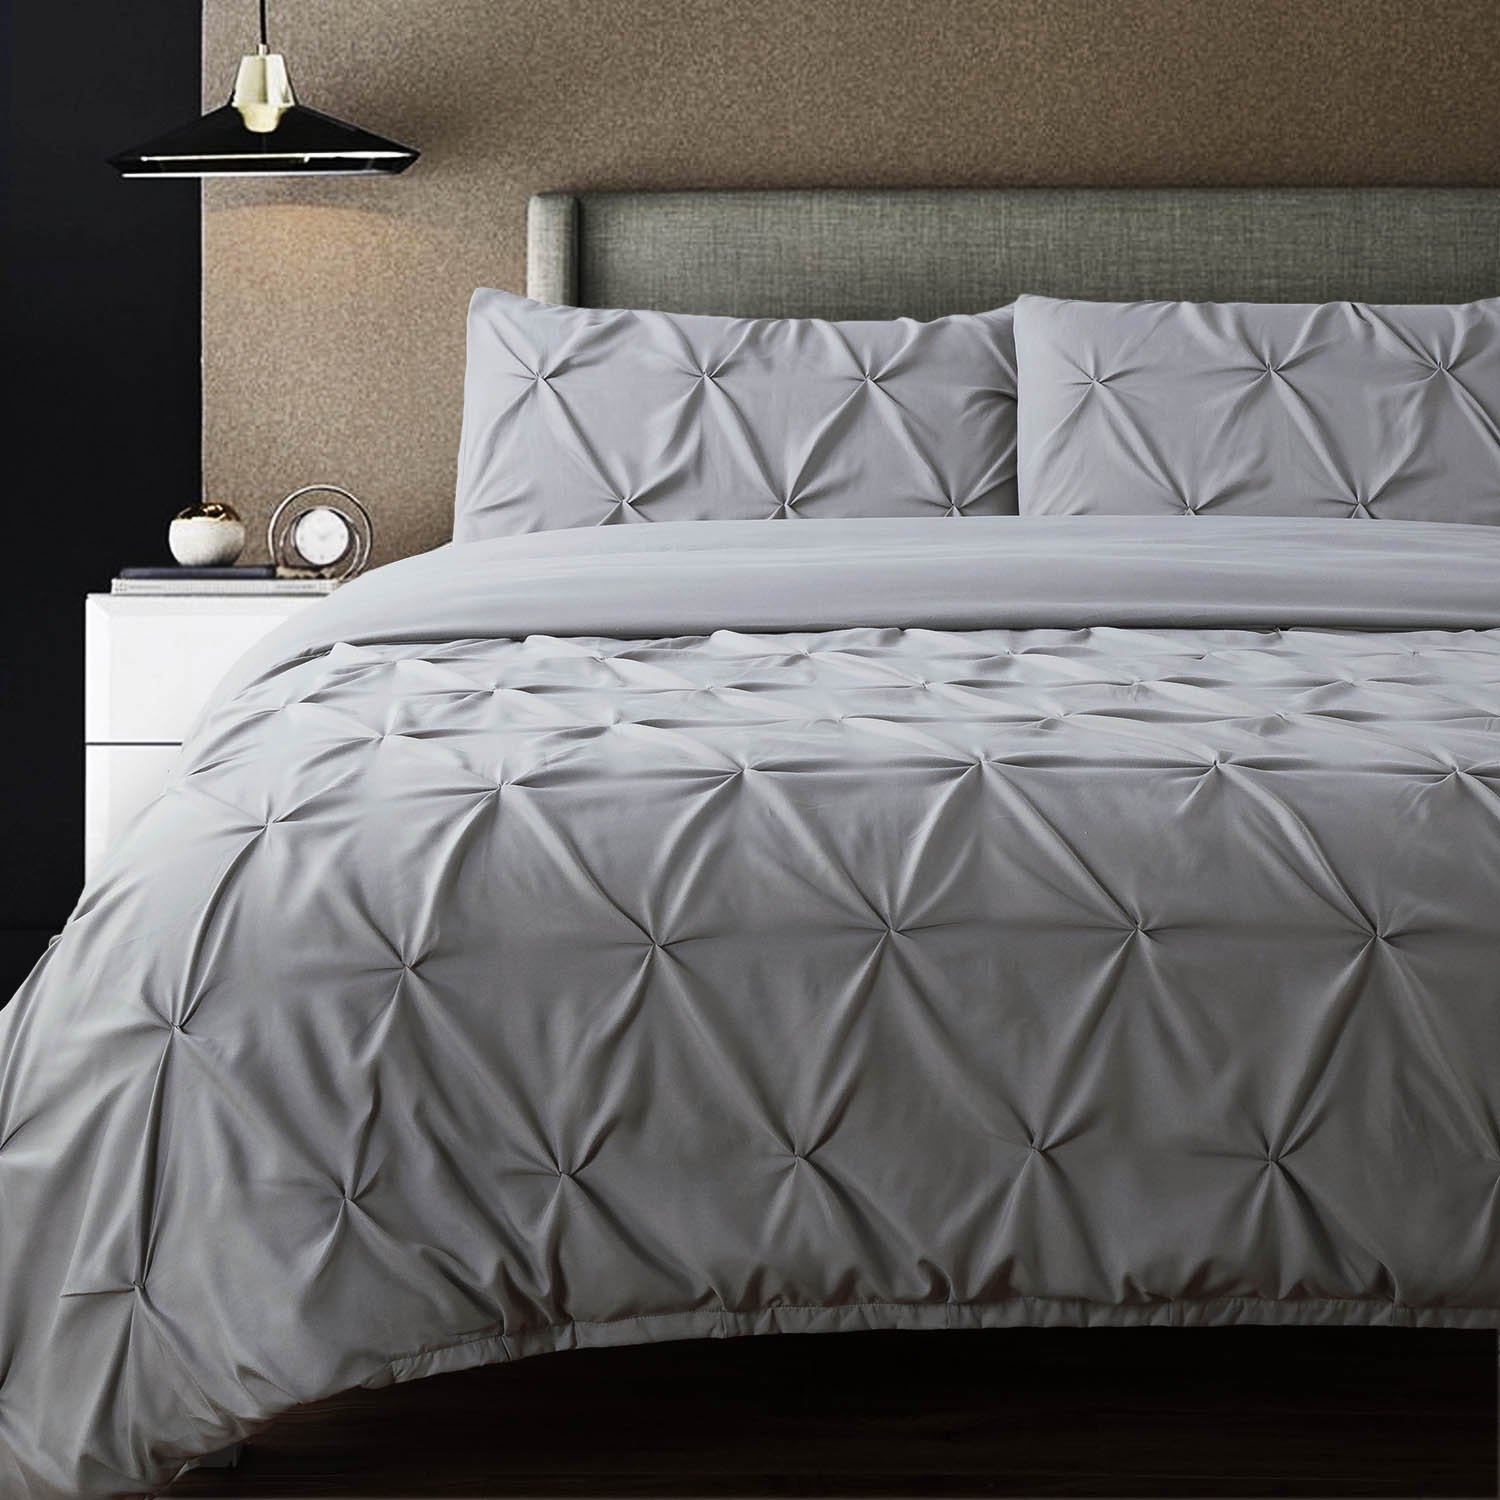 Bedsure Pintuck Duvet Cover Set Queen/Full Size Grey Pinch Pleat Duvet Cover 3 Pieces Bedding Set